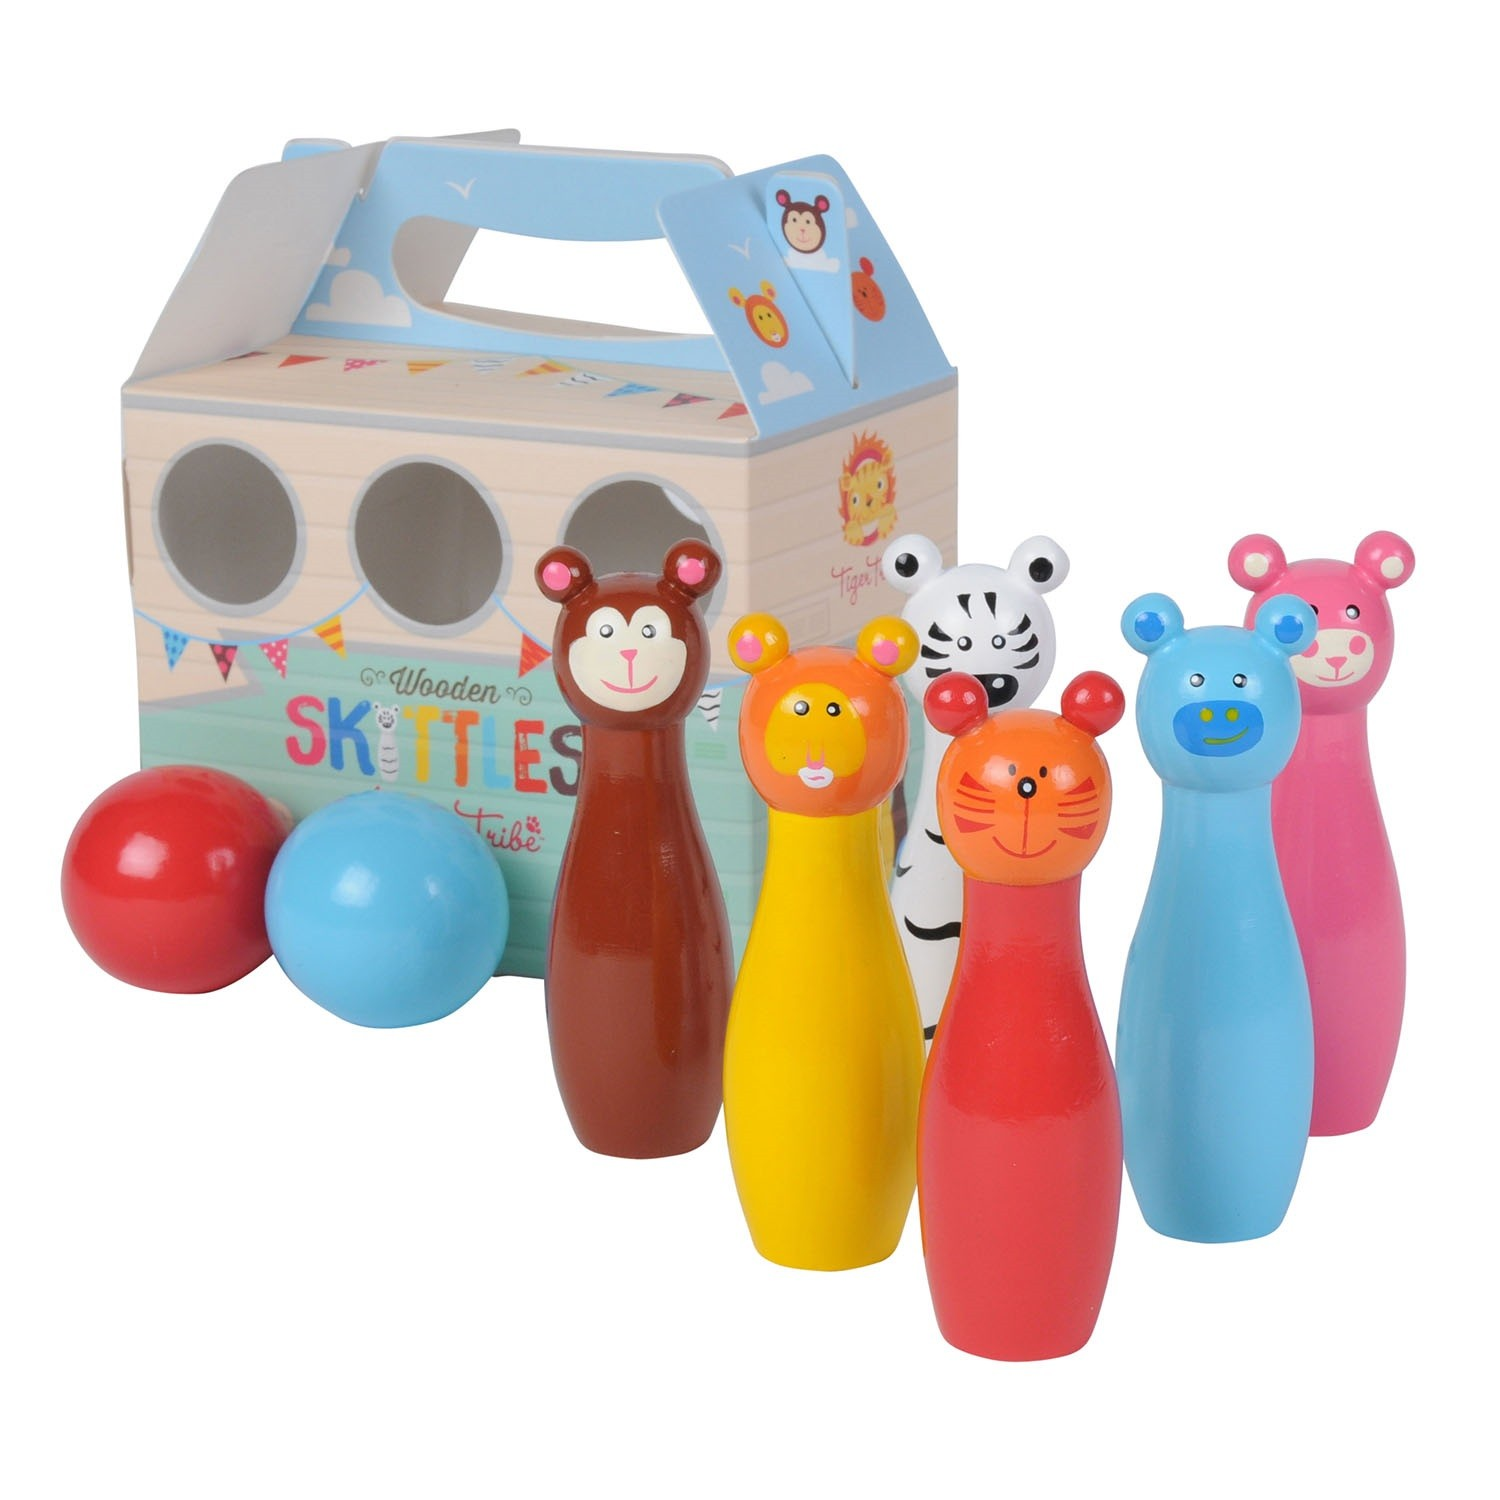 Wooden Toys Tiger Tribe Animal Skittles